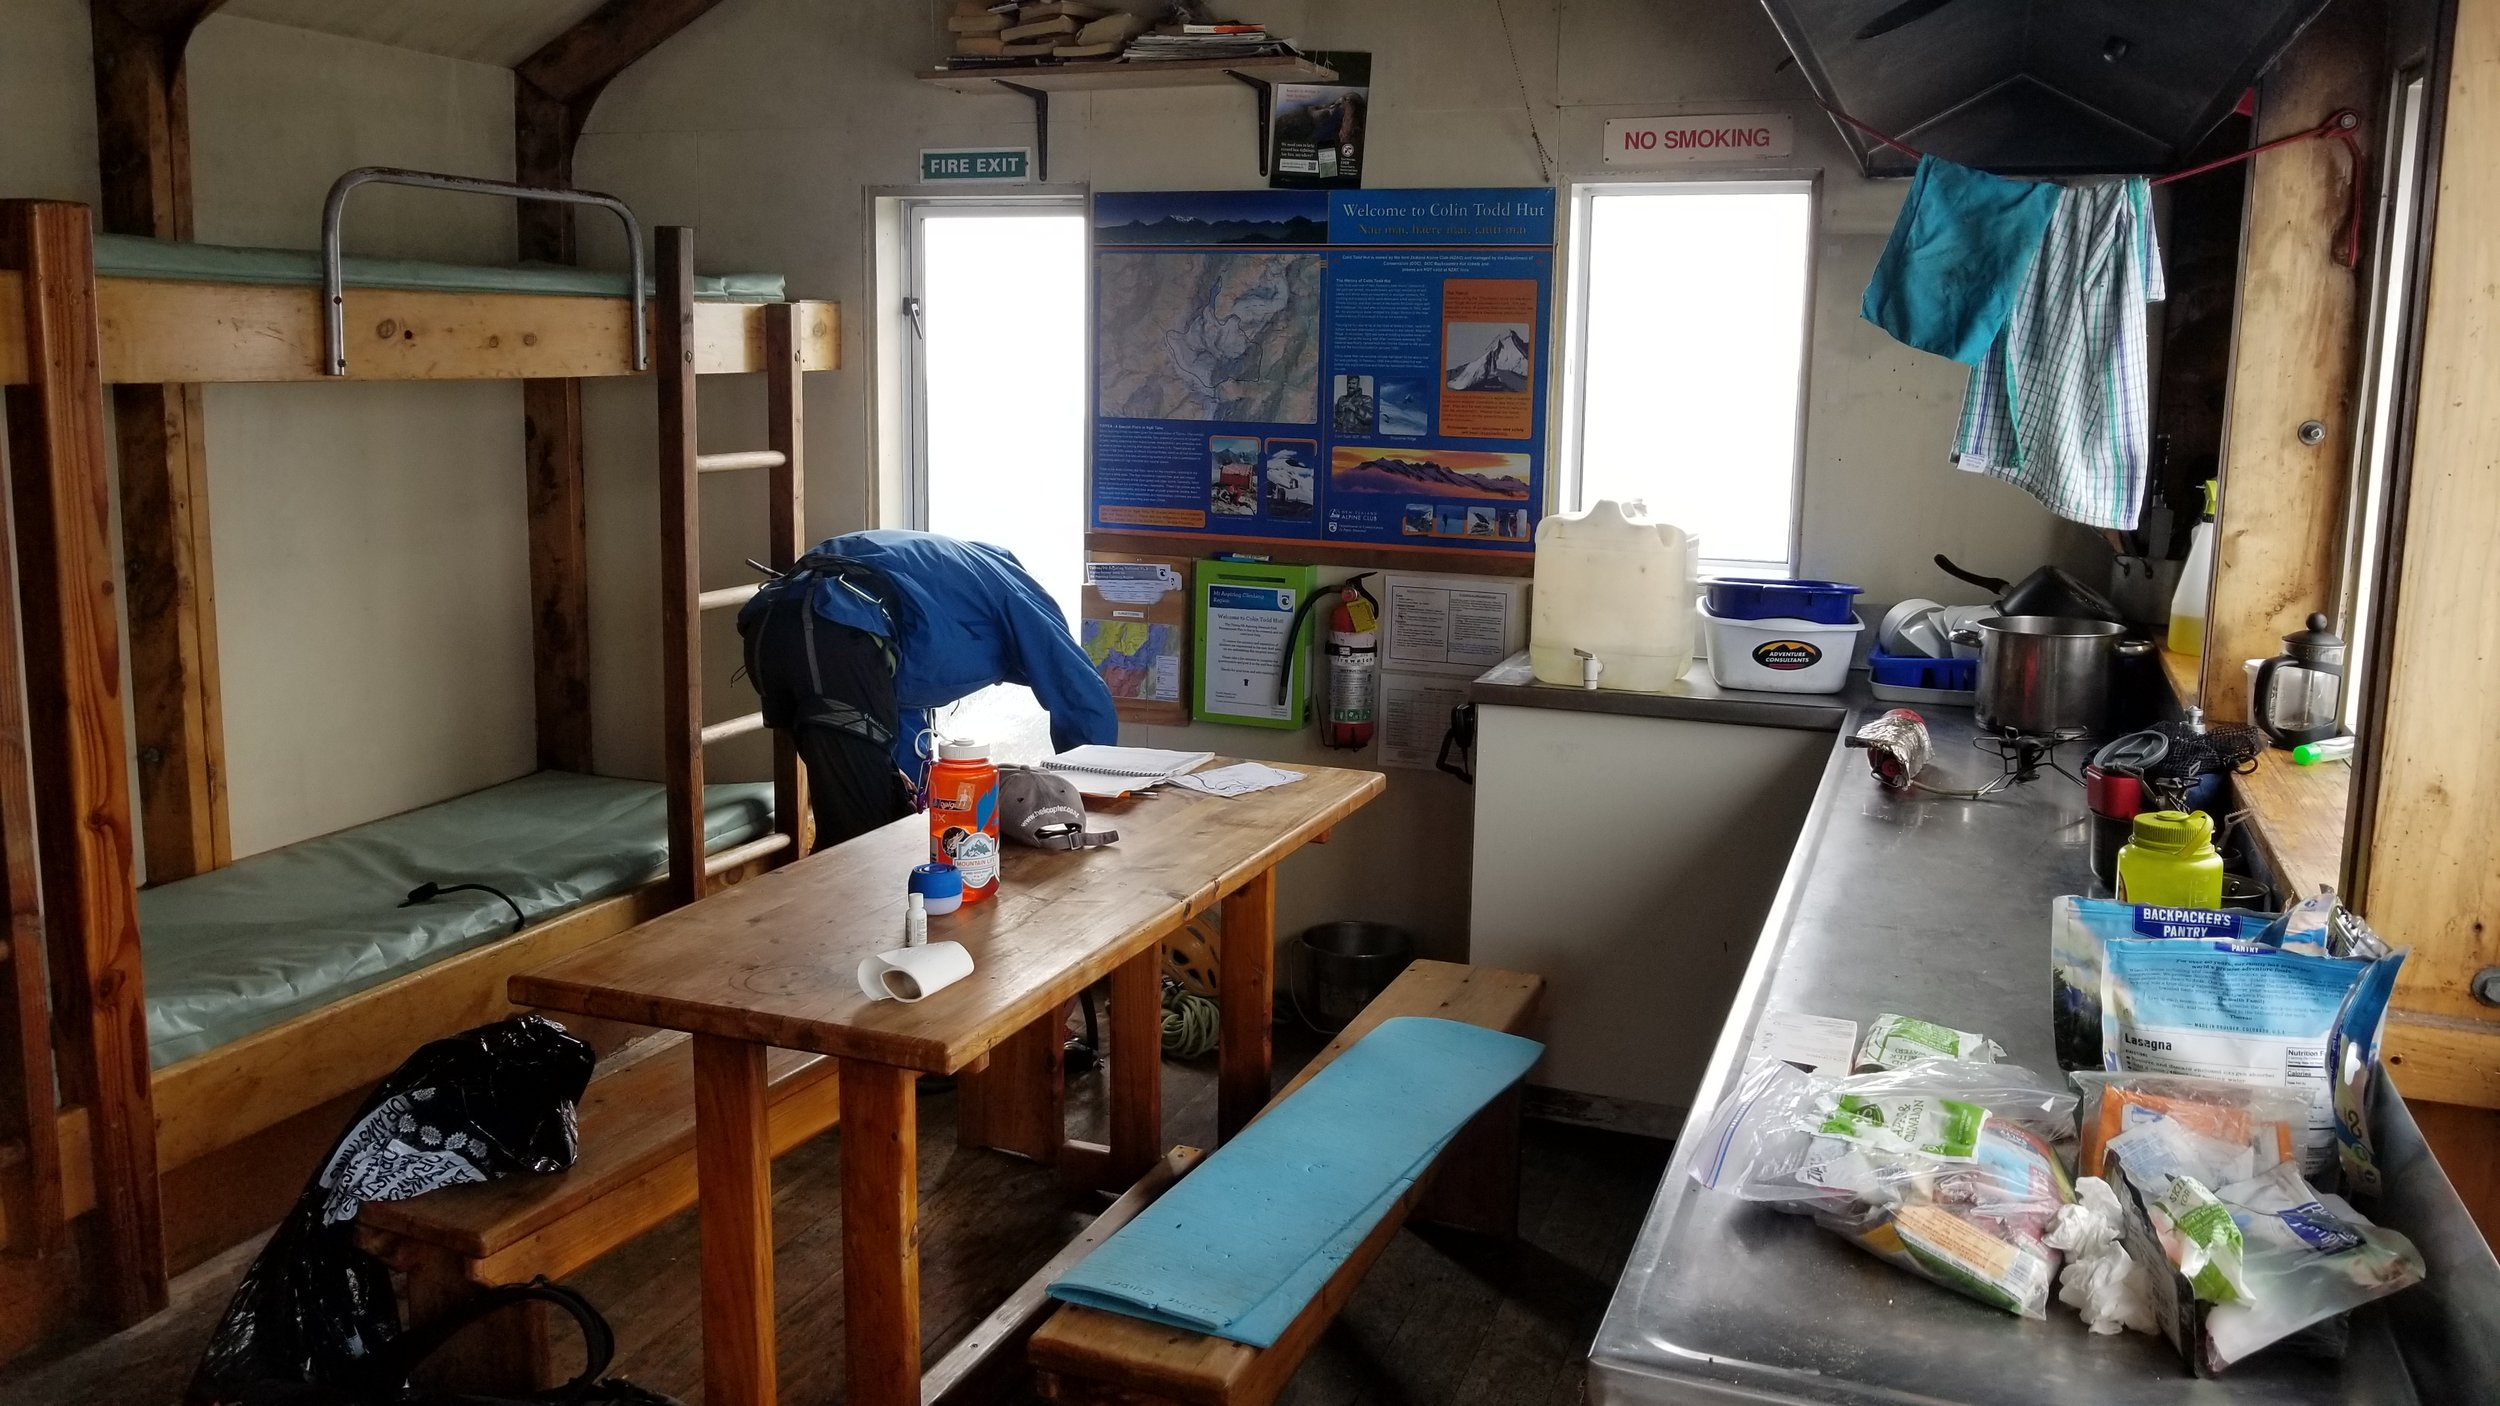 Inside the Colin Todd hut. There are mattresses and camp stove, but you bring your own sleeping bag, fuel, and food.